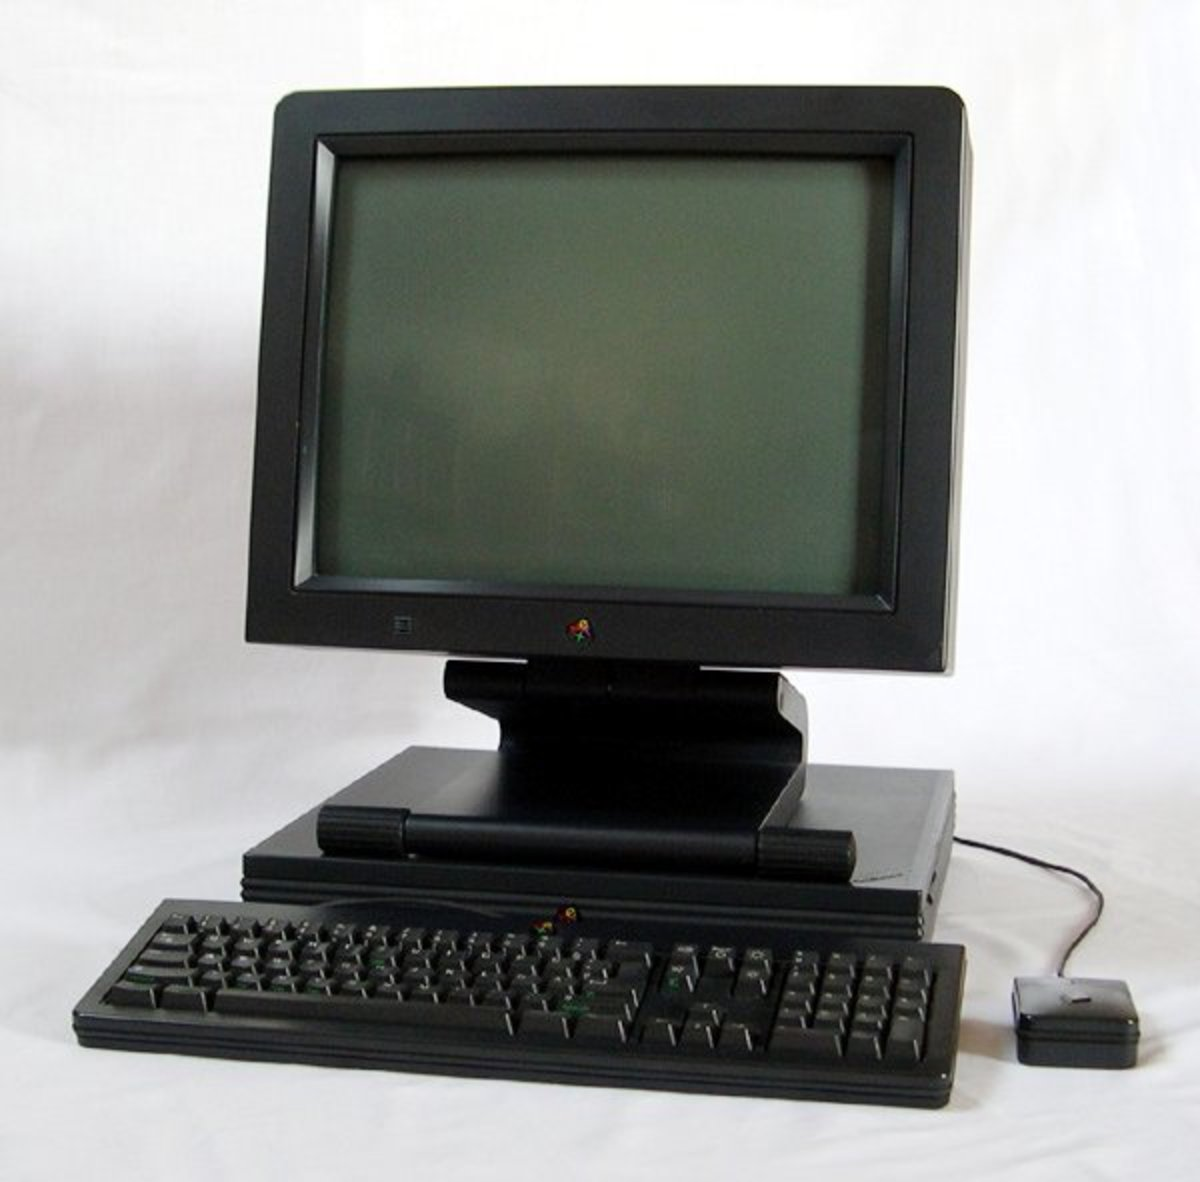 A NeXTstation computer, which was later bought by Apple for $7 million.